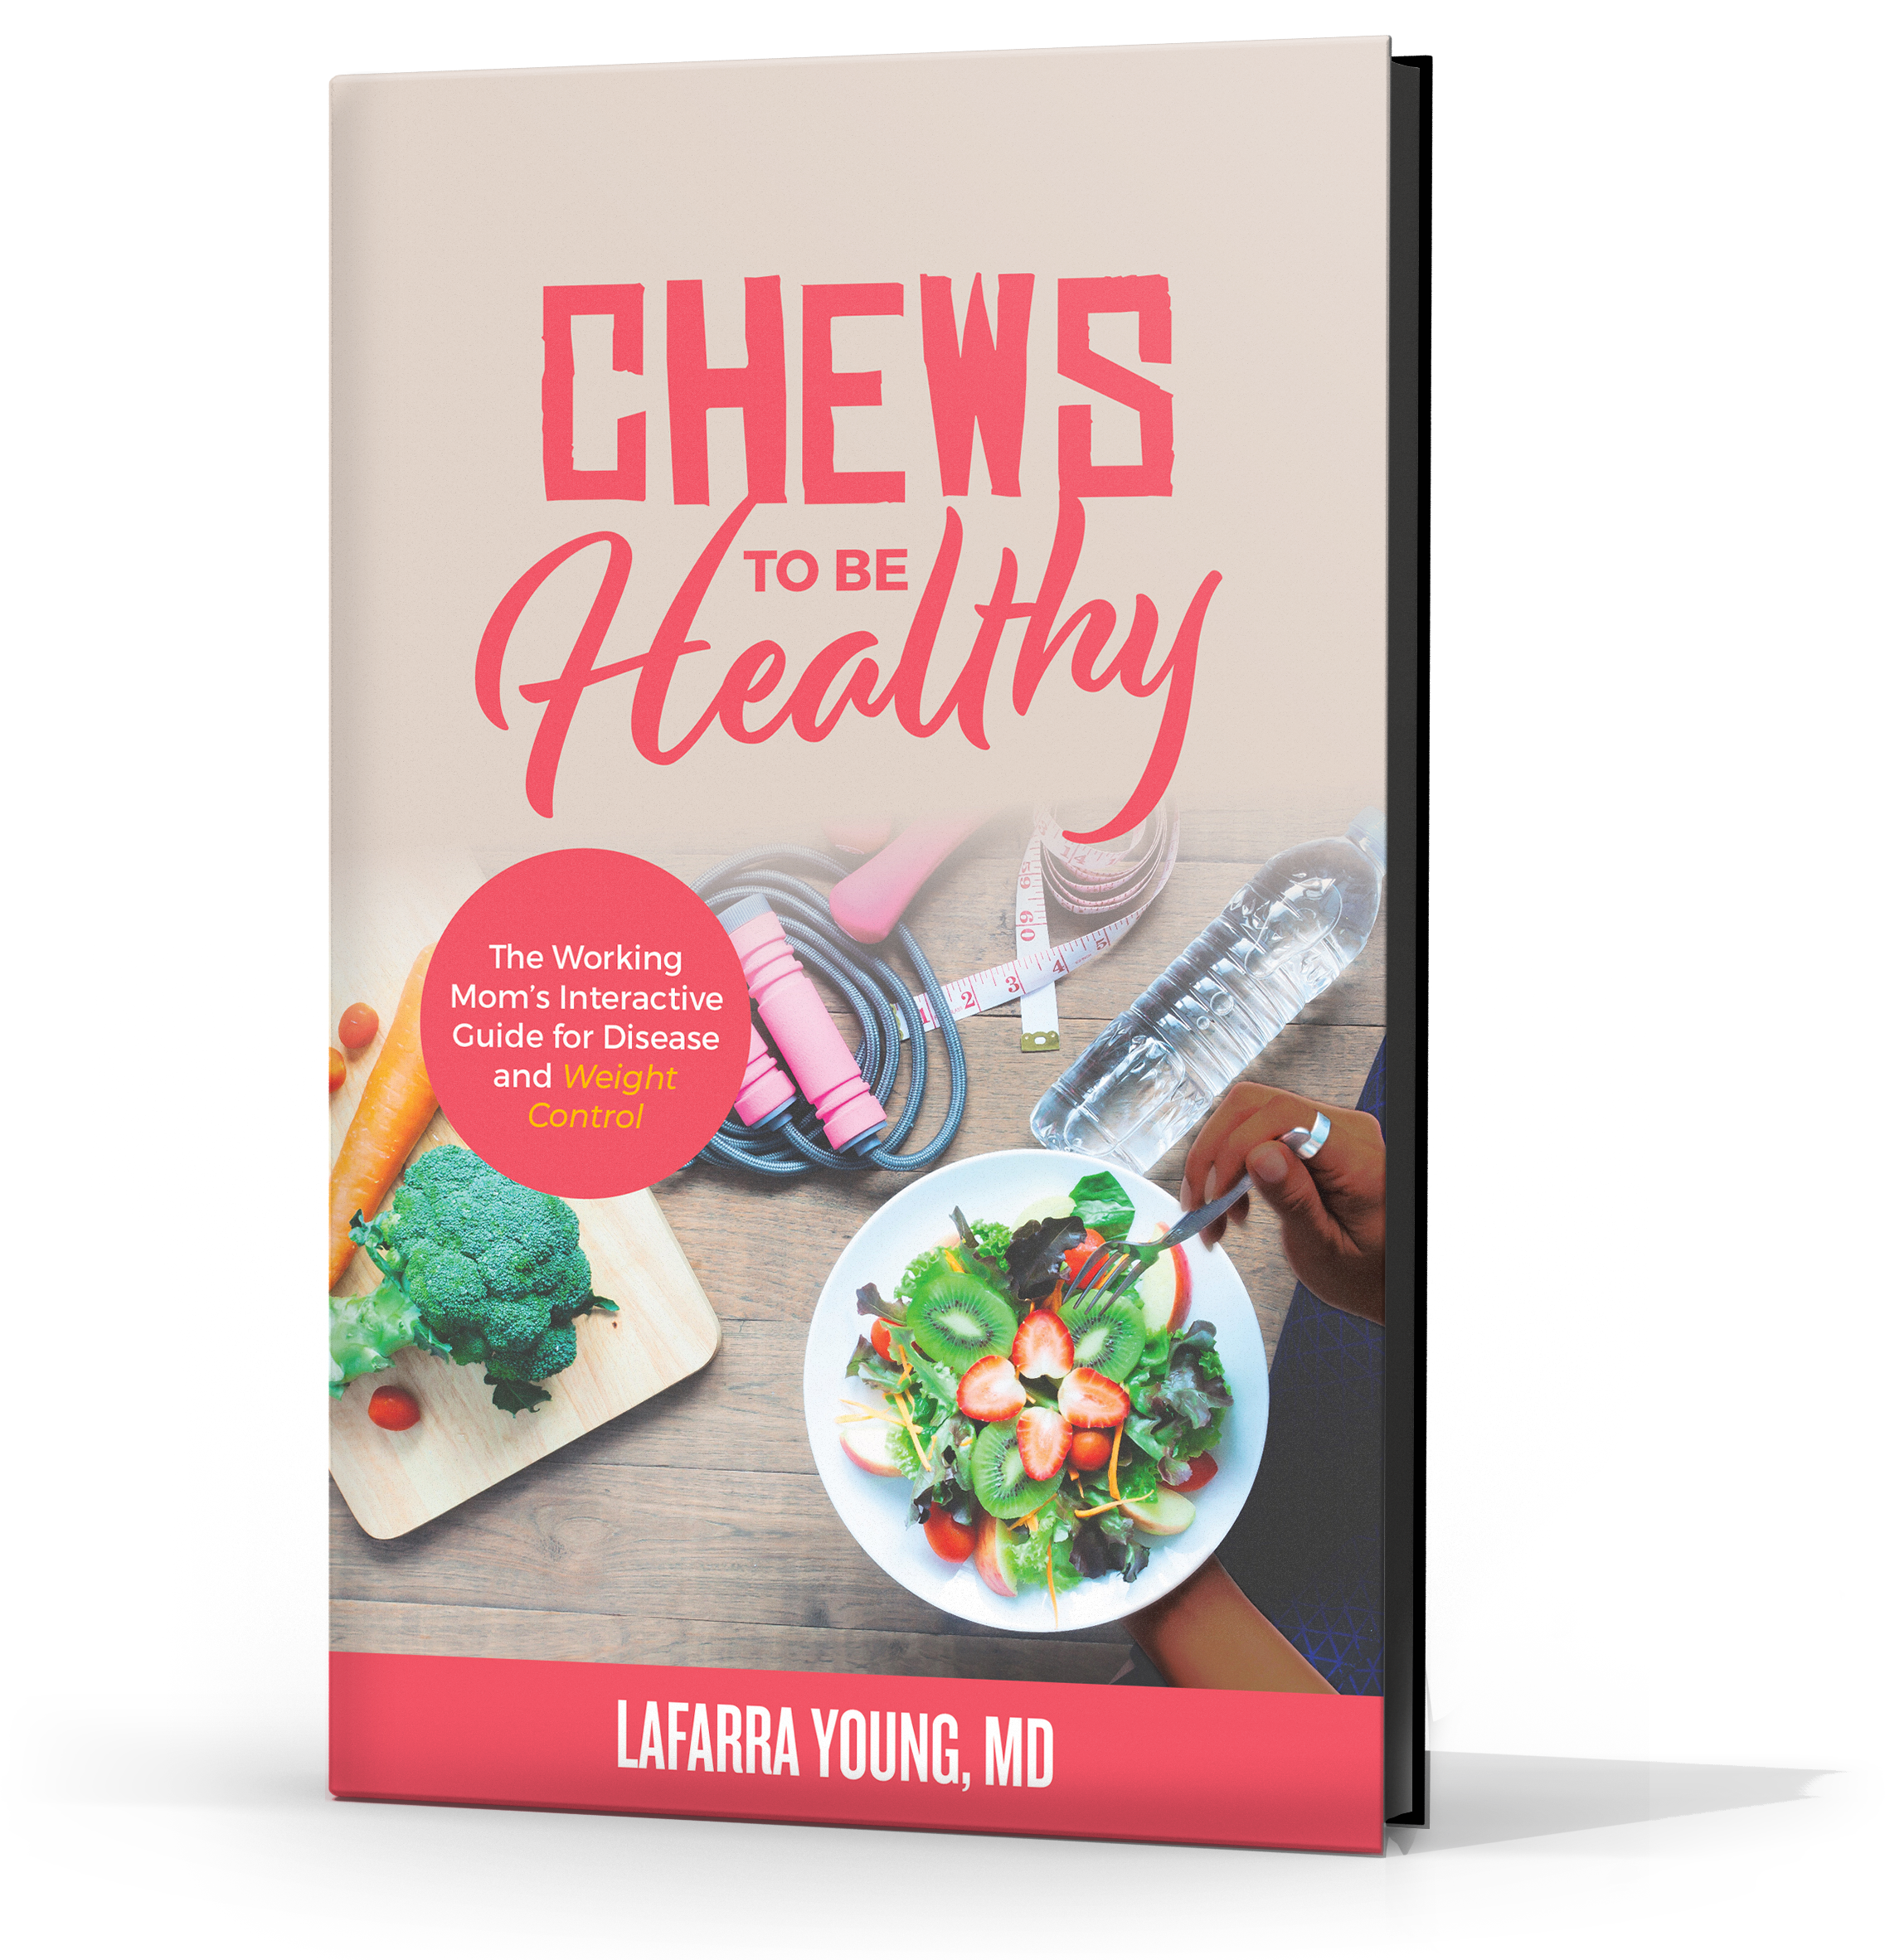 Triple Board-Certified Doctor and Bestselling Author Releases Manual to Coach Working Moms into a Healthier Lifestyle